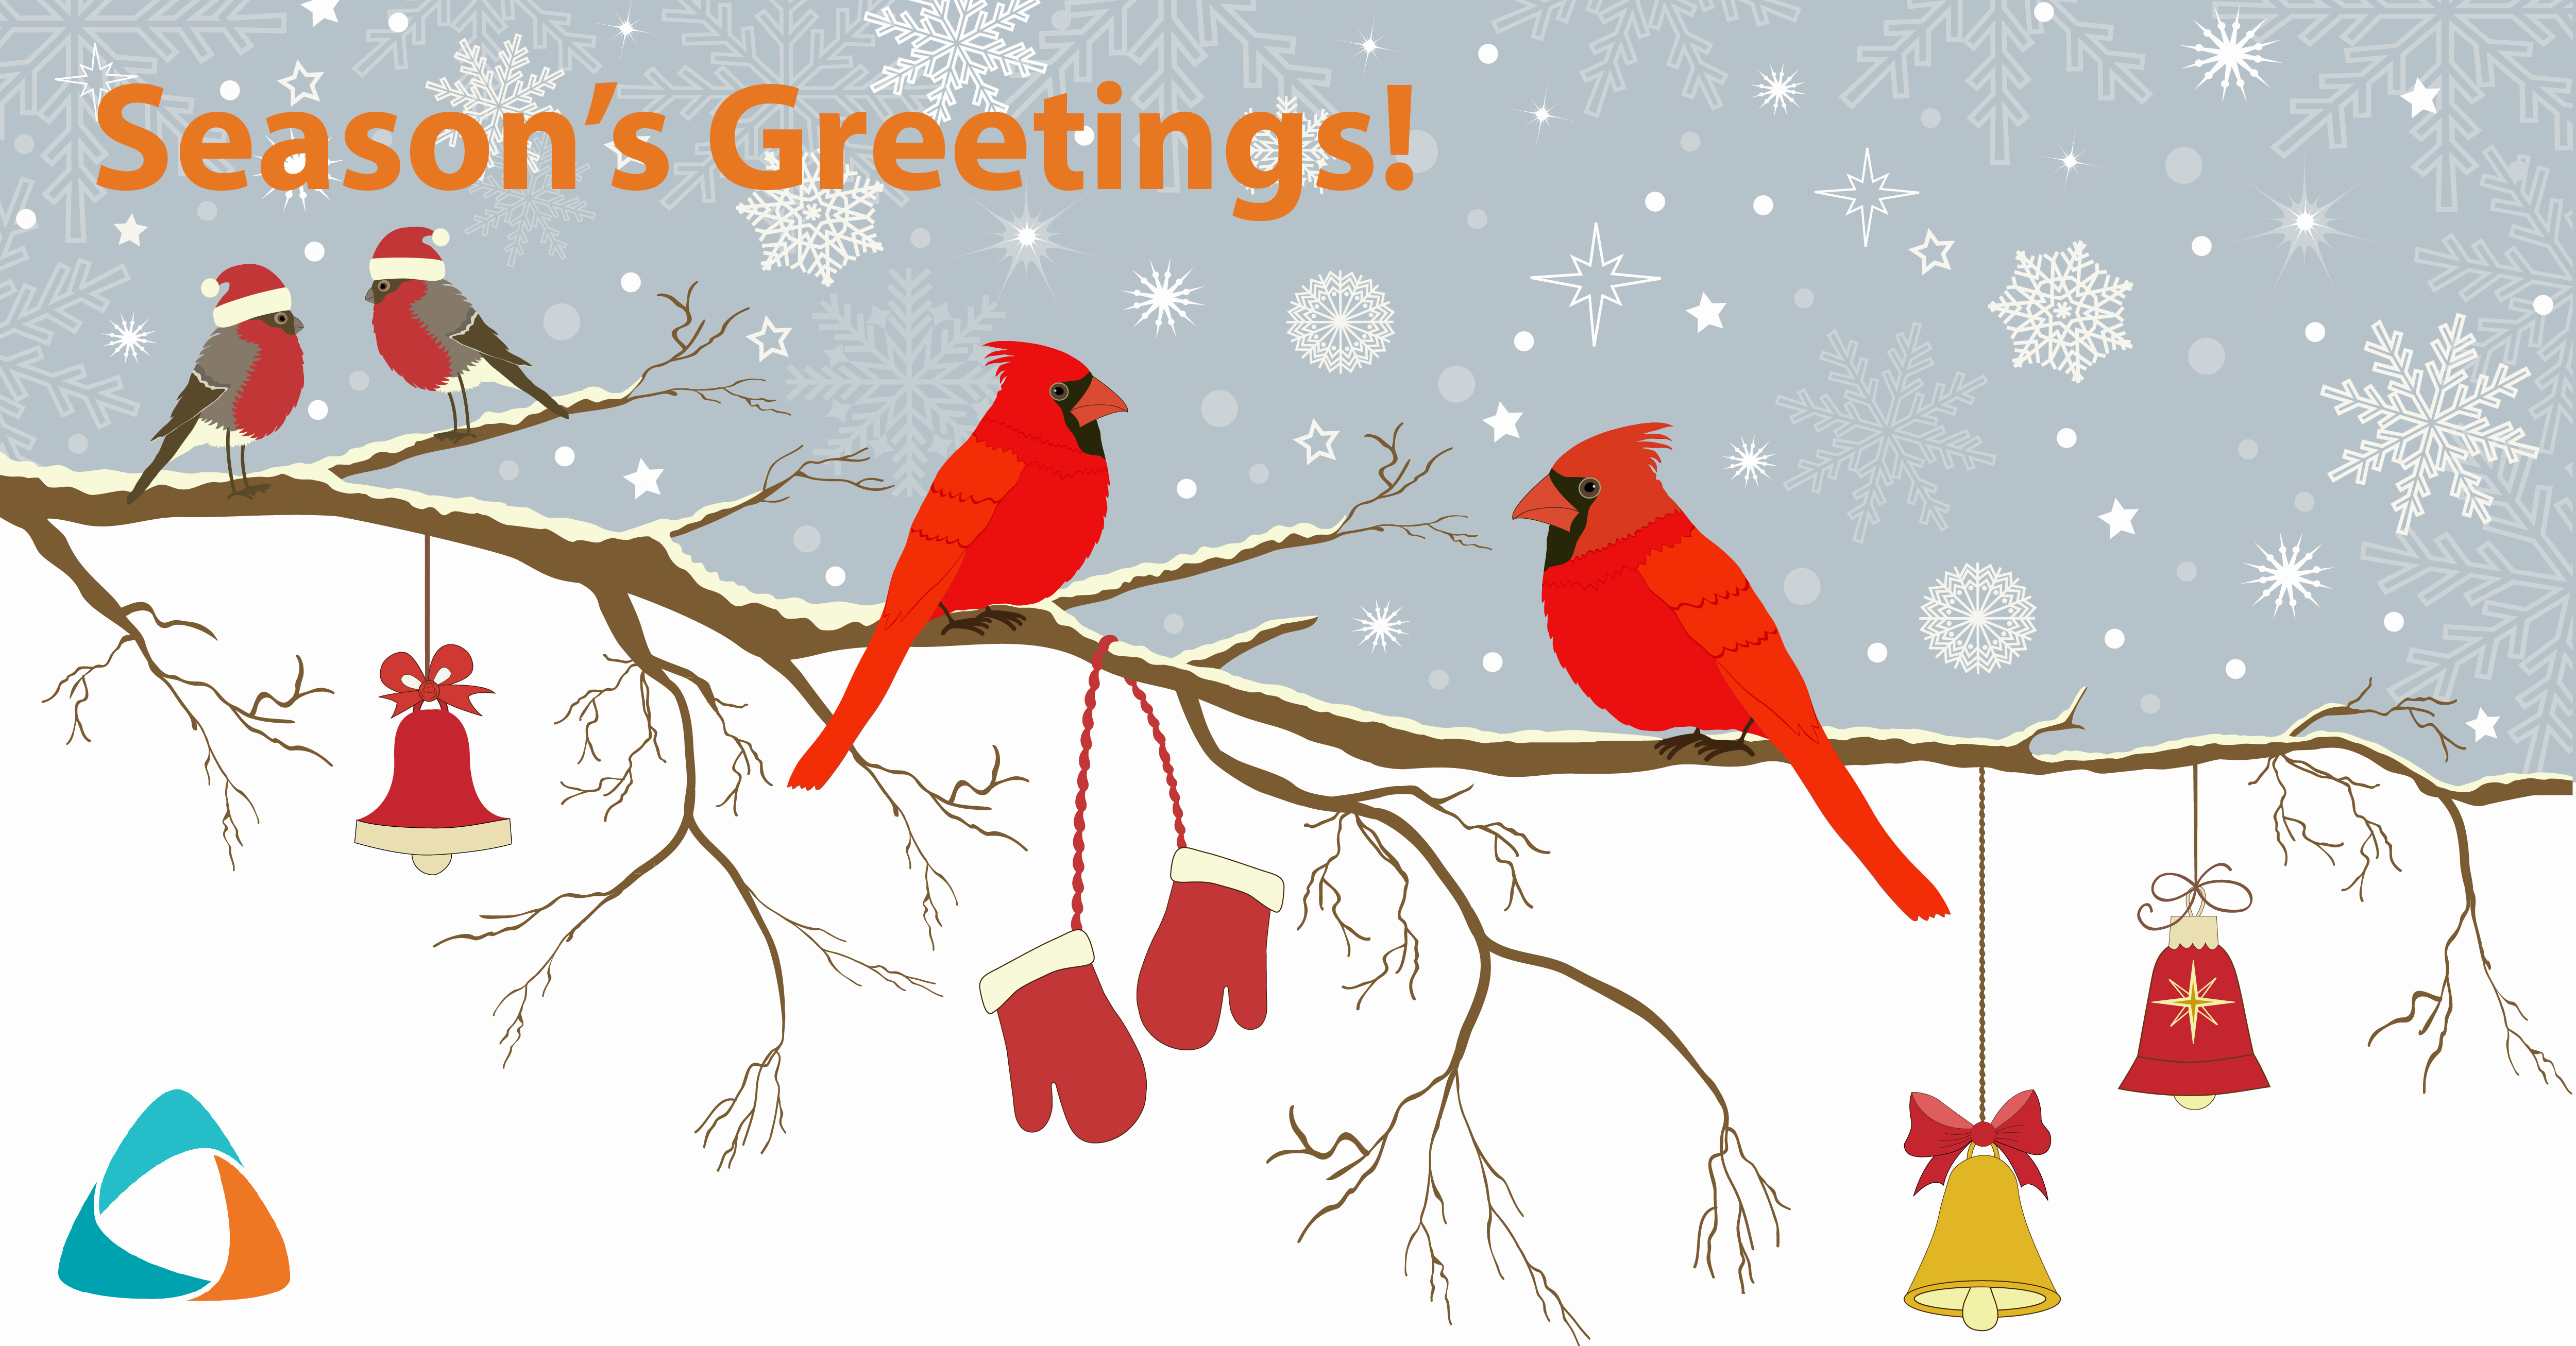 Warm and friendly wishes from AAFCPAs